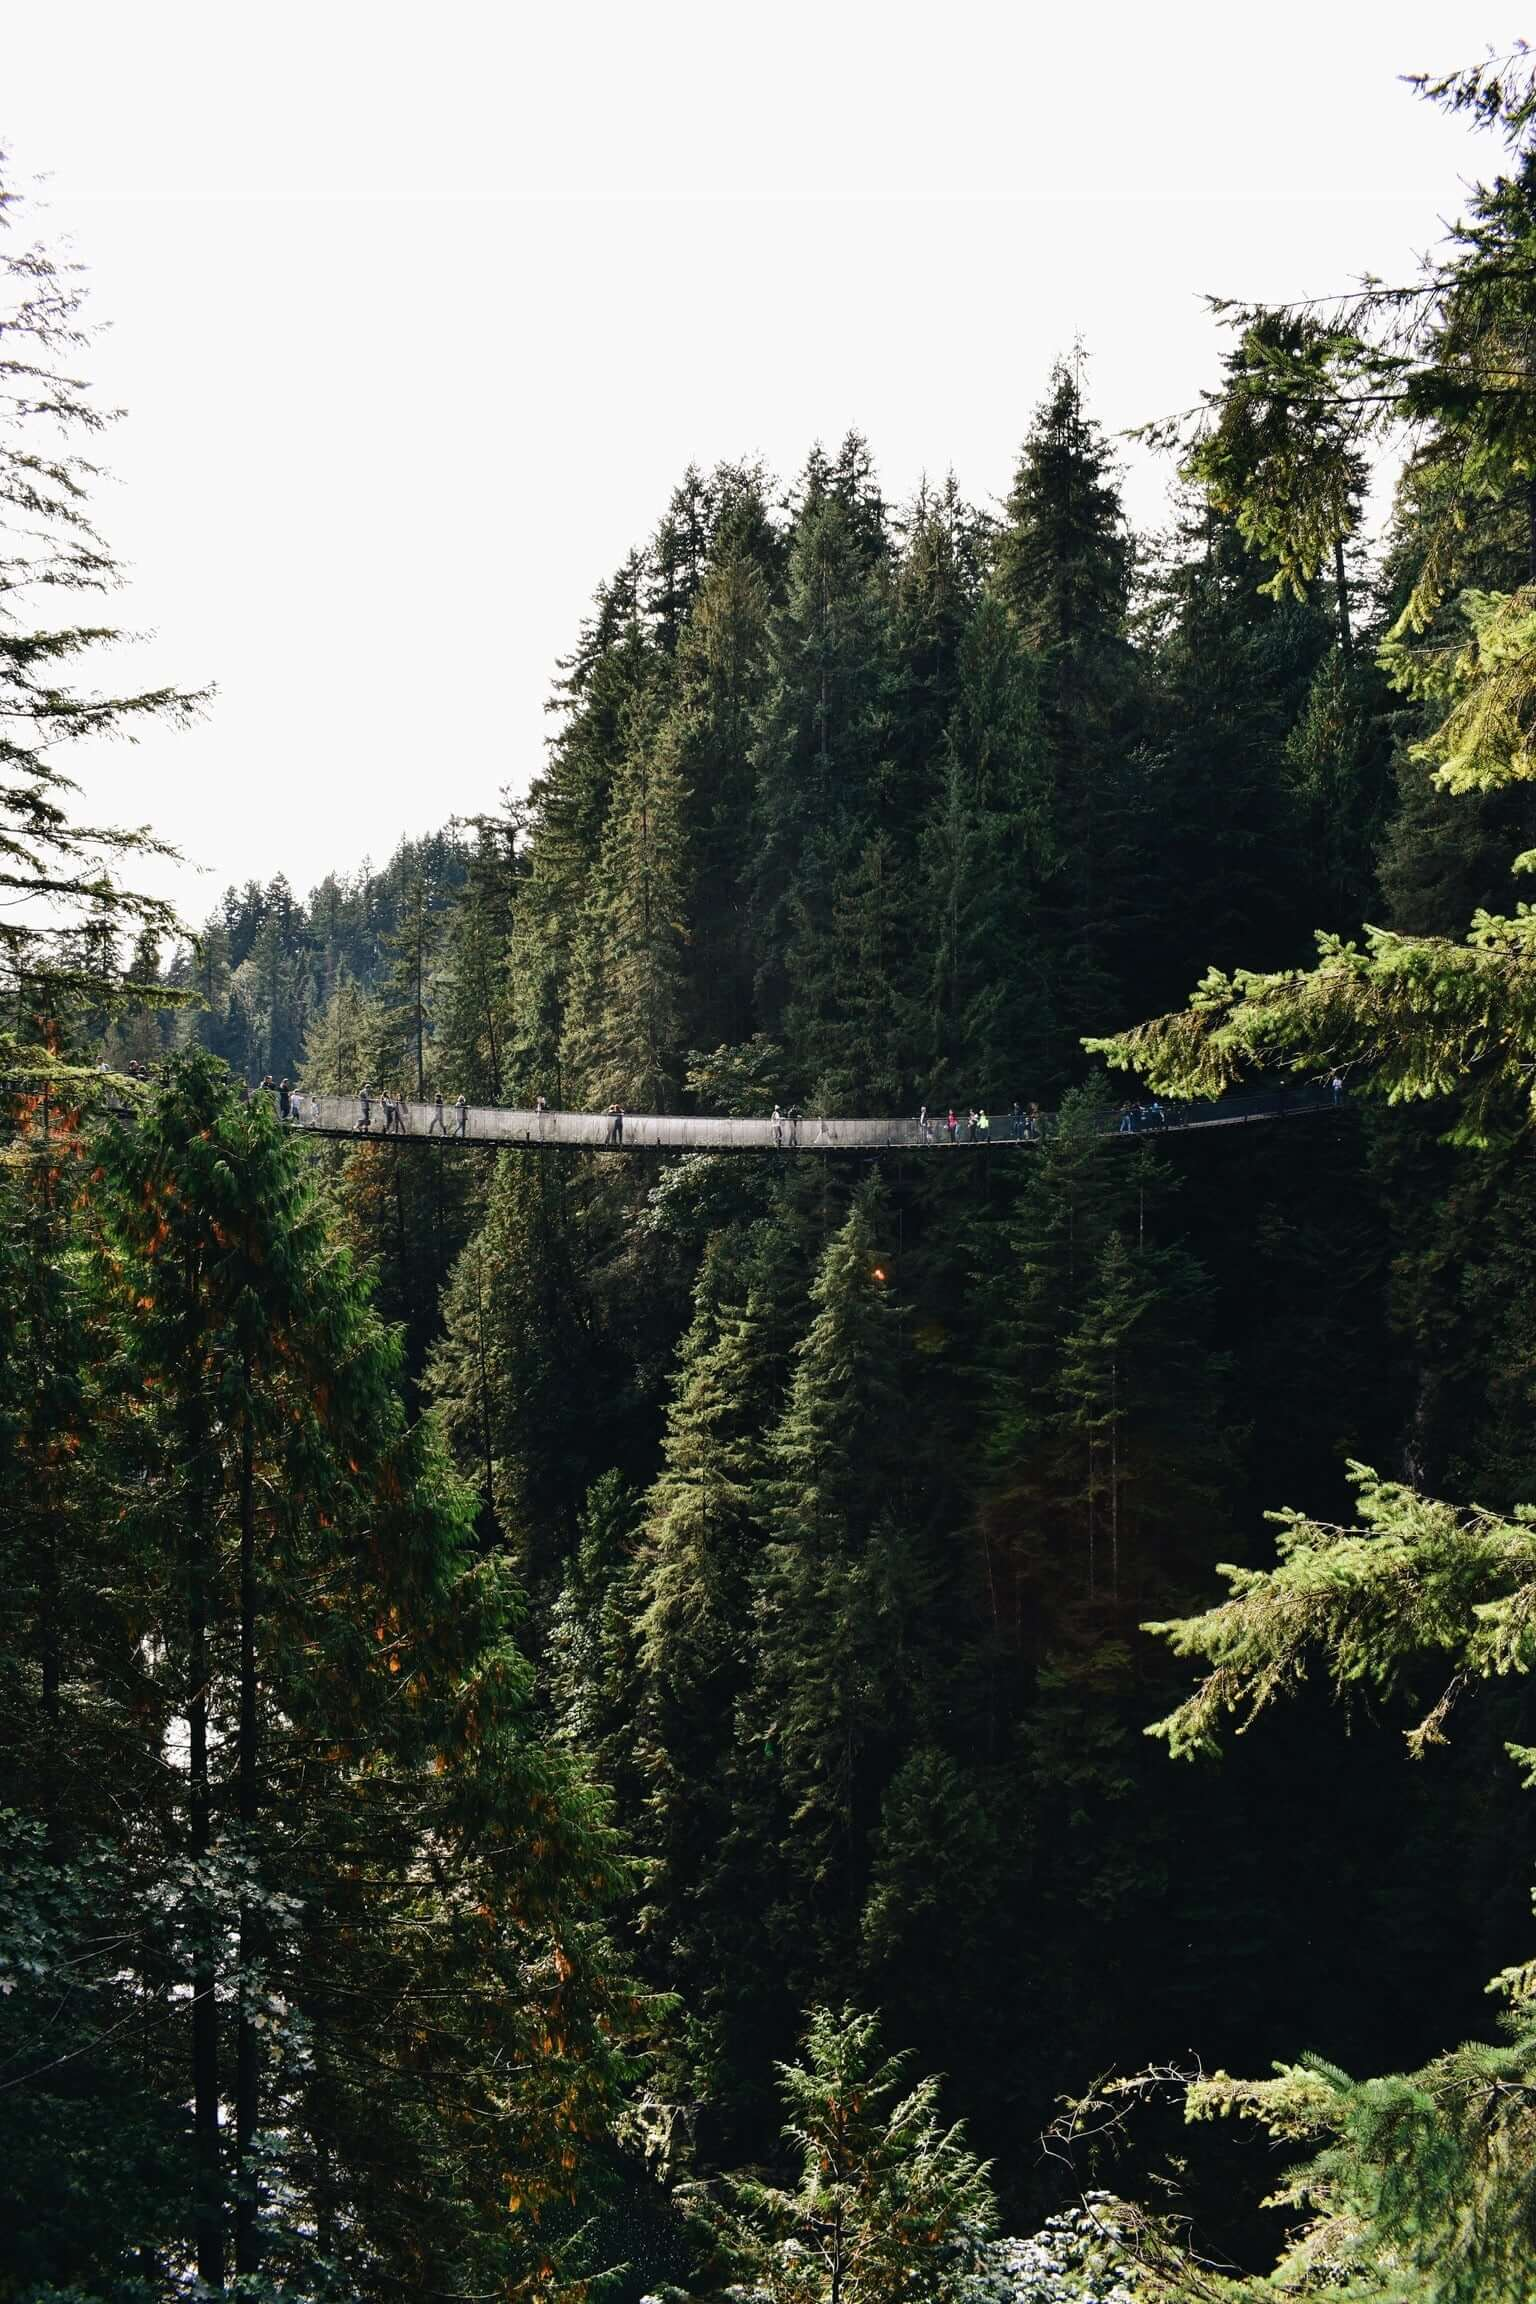 Capilano Suspension Bridge. Photo by EC on Unsplash